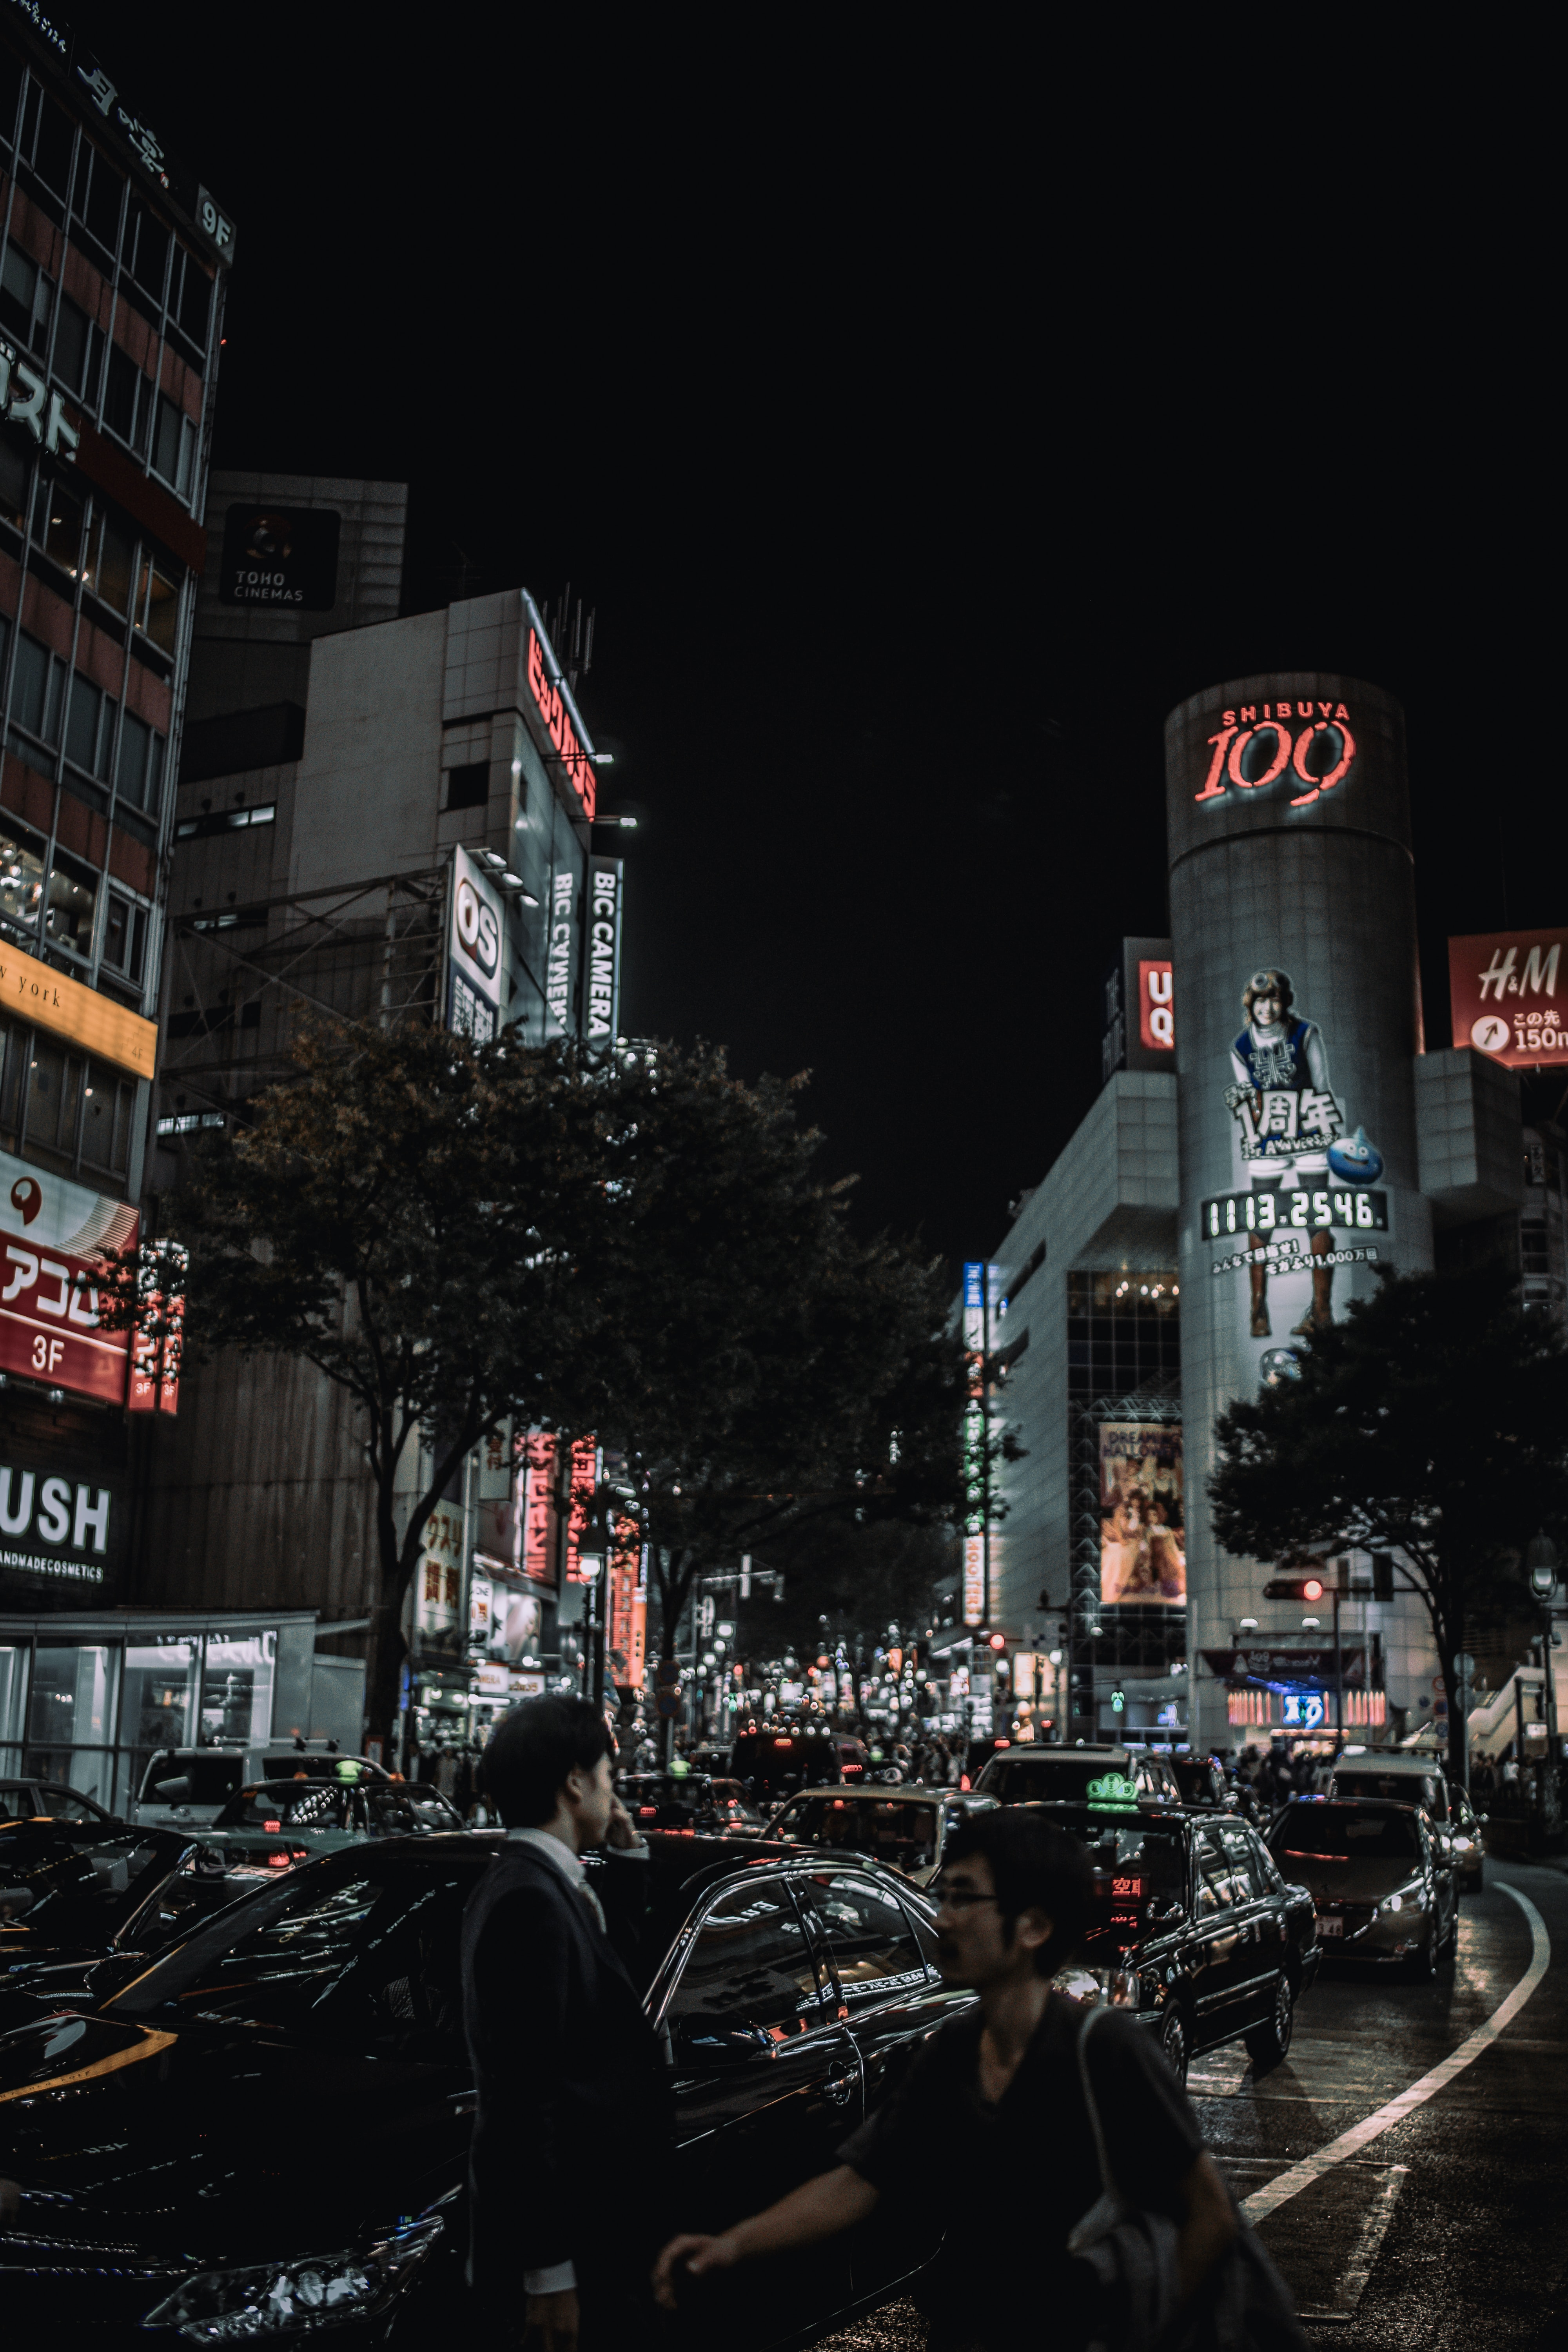 Busy urban streets with pedestrians and neon building store signs in Shibuya Crossing at night